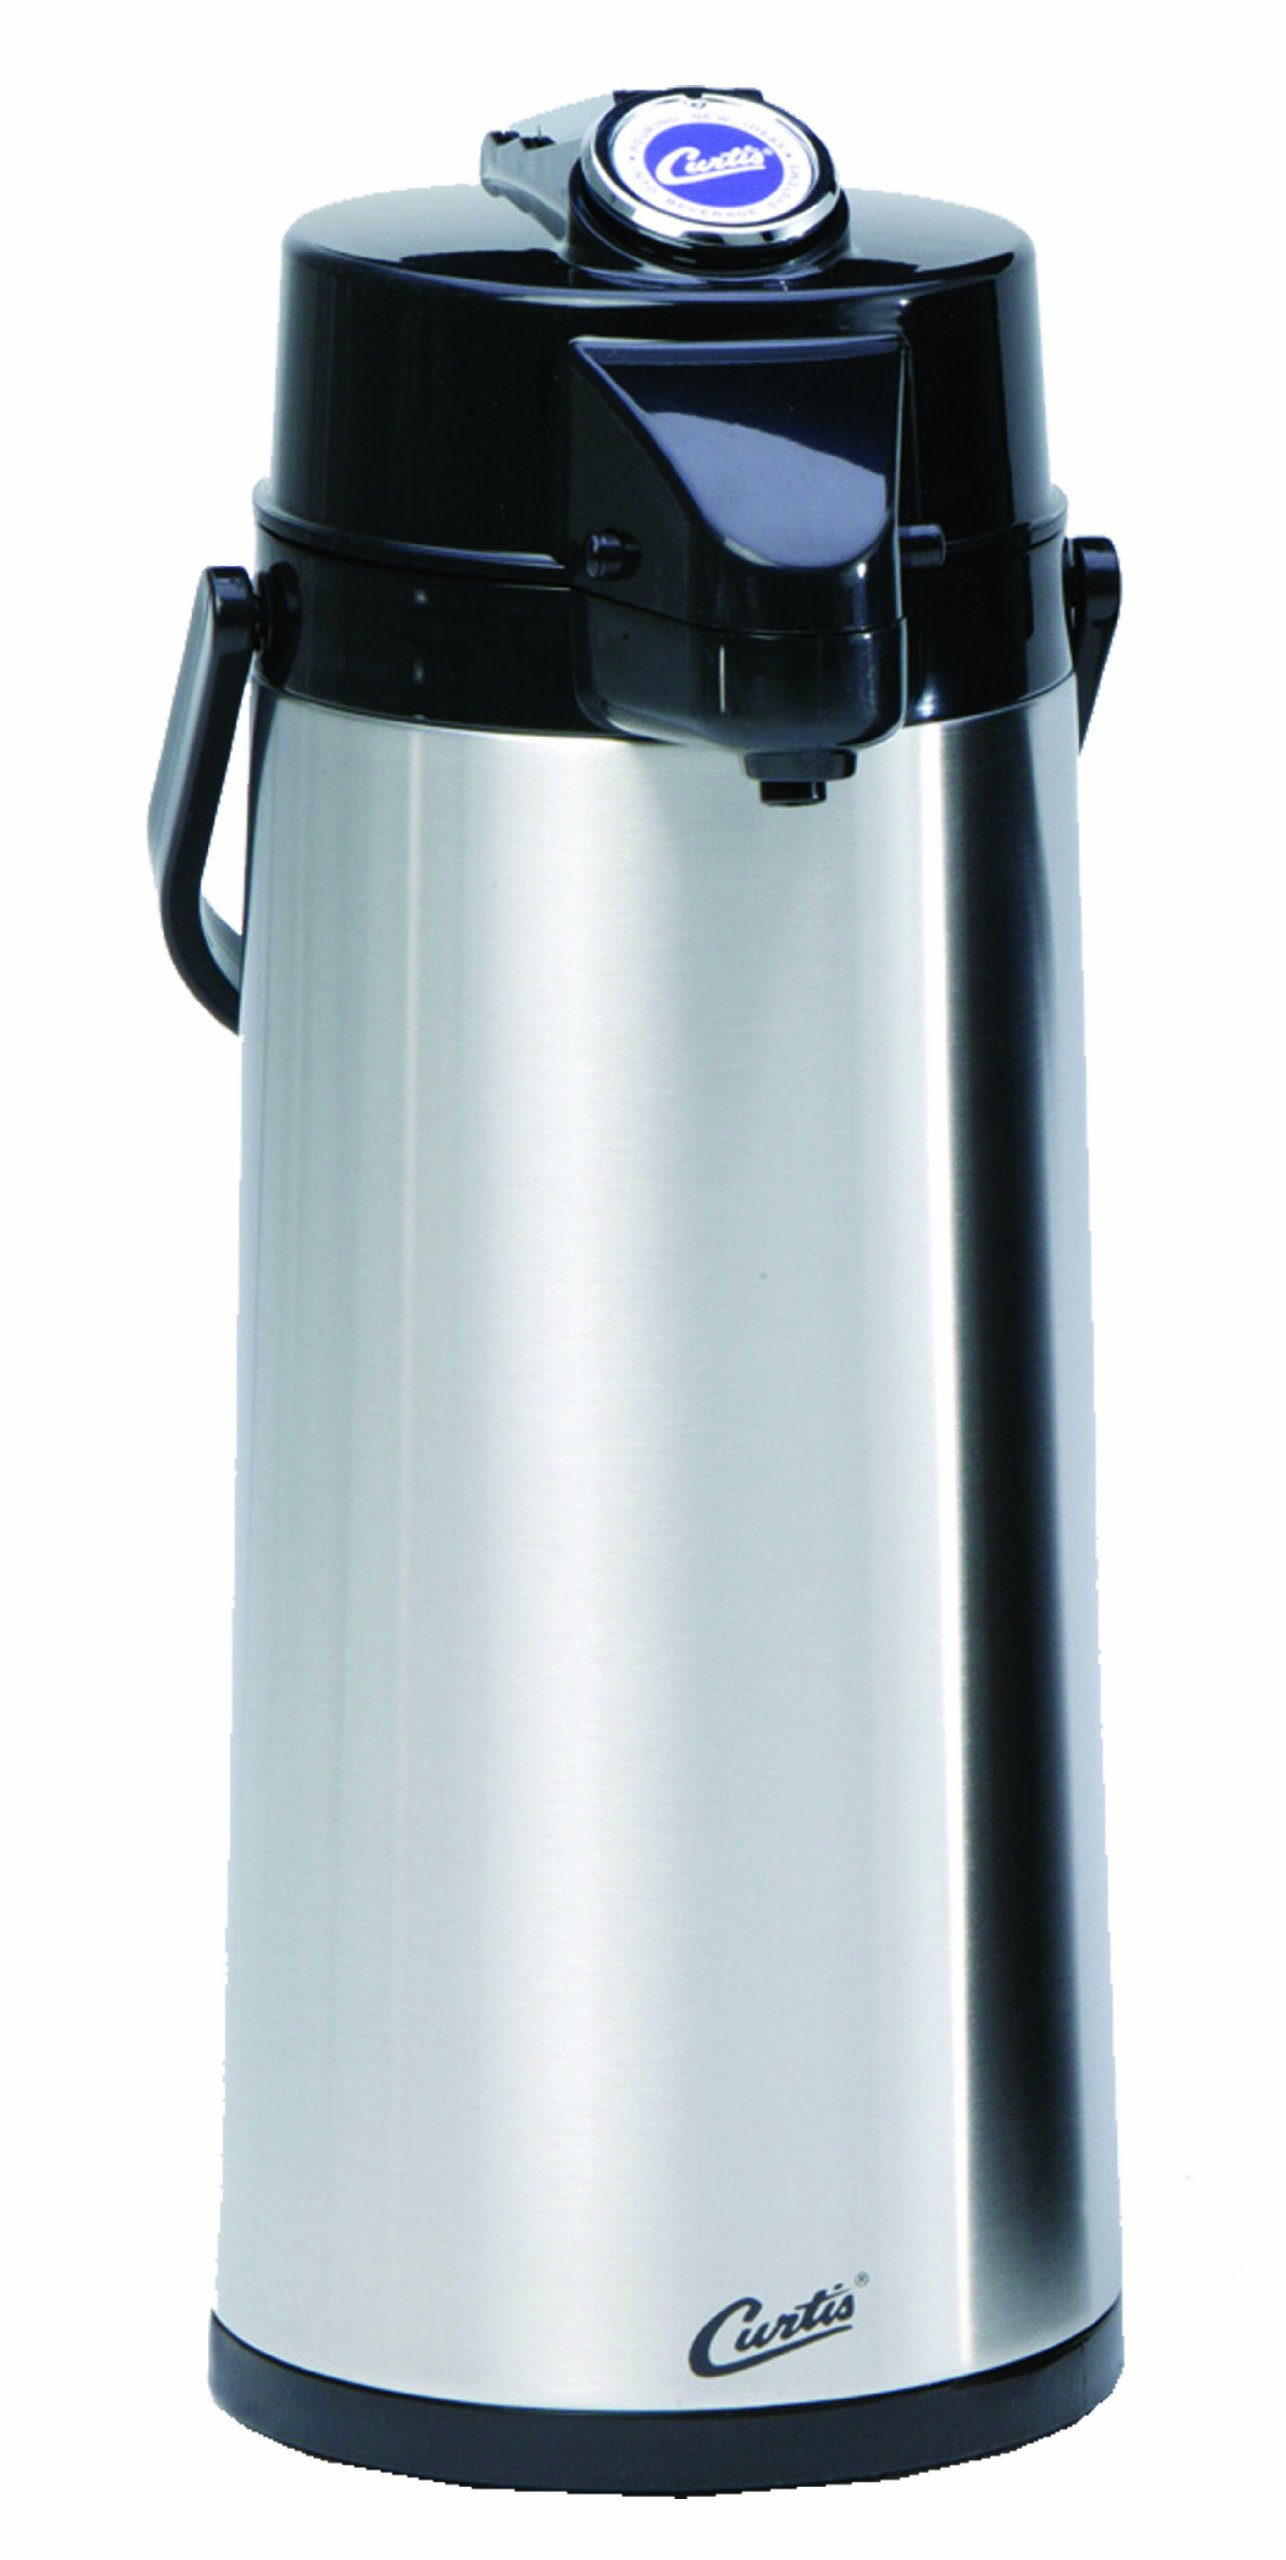 Wilbur Curtis Thermal Dispenser Air Pot, 2.2L S.S. Body Glass Liner Lever Pump - Commercial Airpot Pourpot Beverage Dispenser - TLXA2201G000 (Each) by Wilbur Curtis